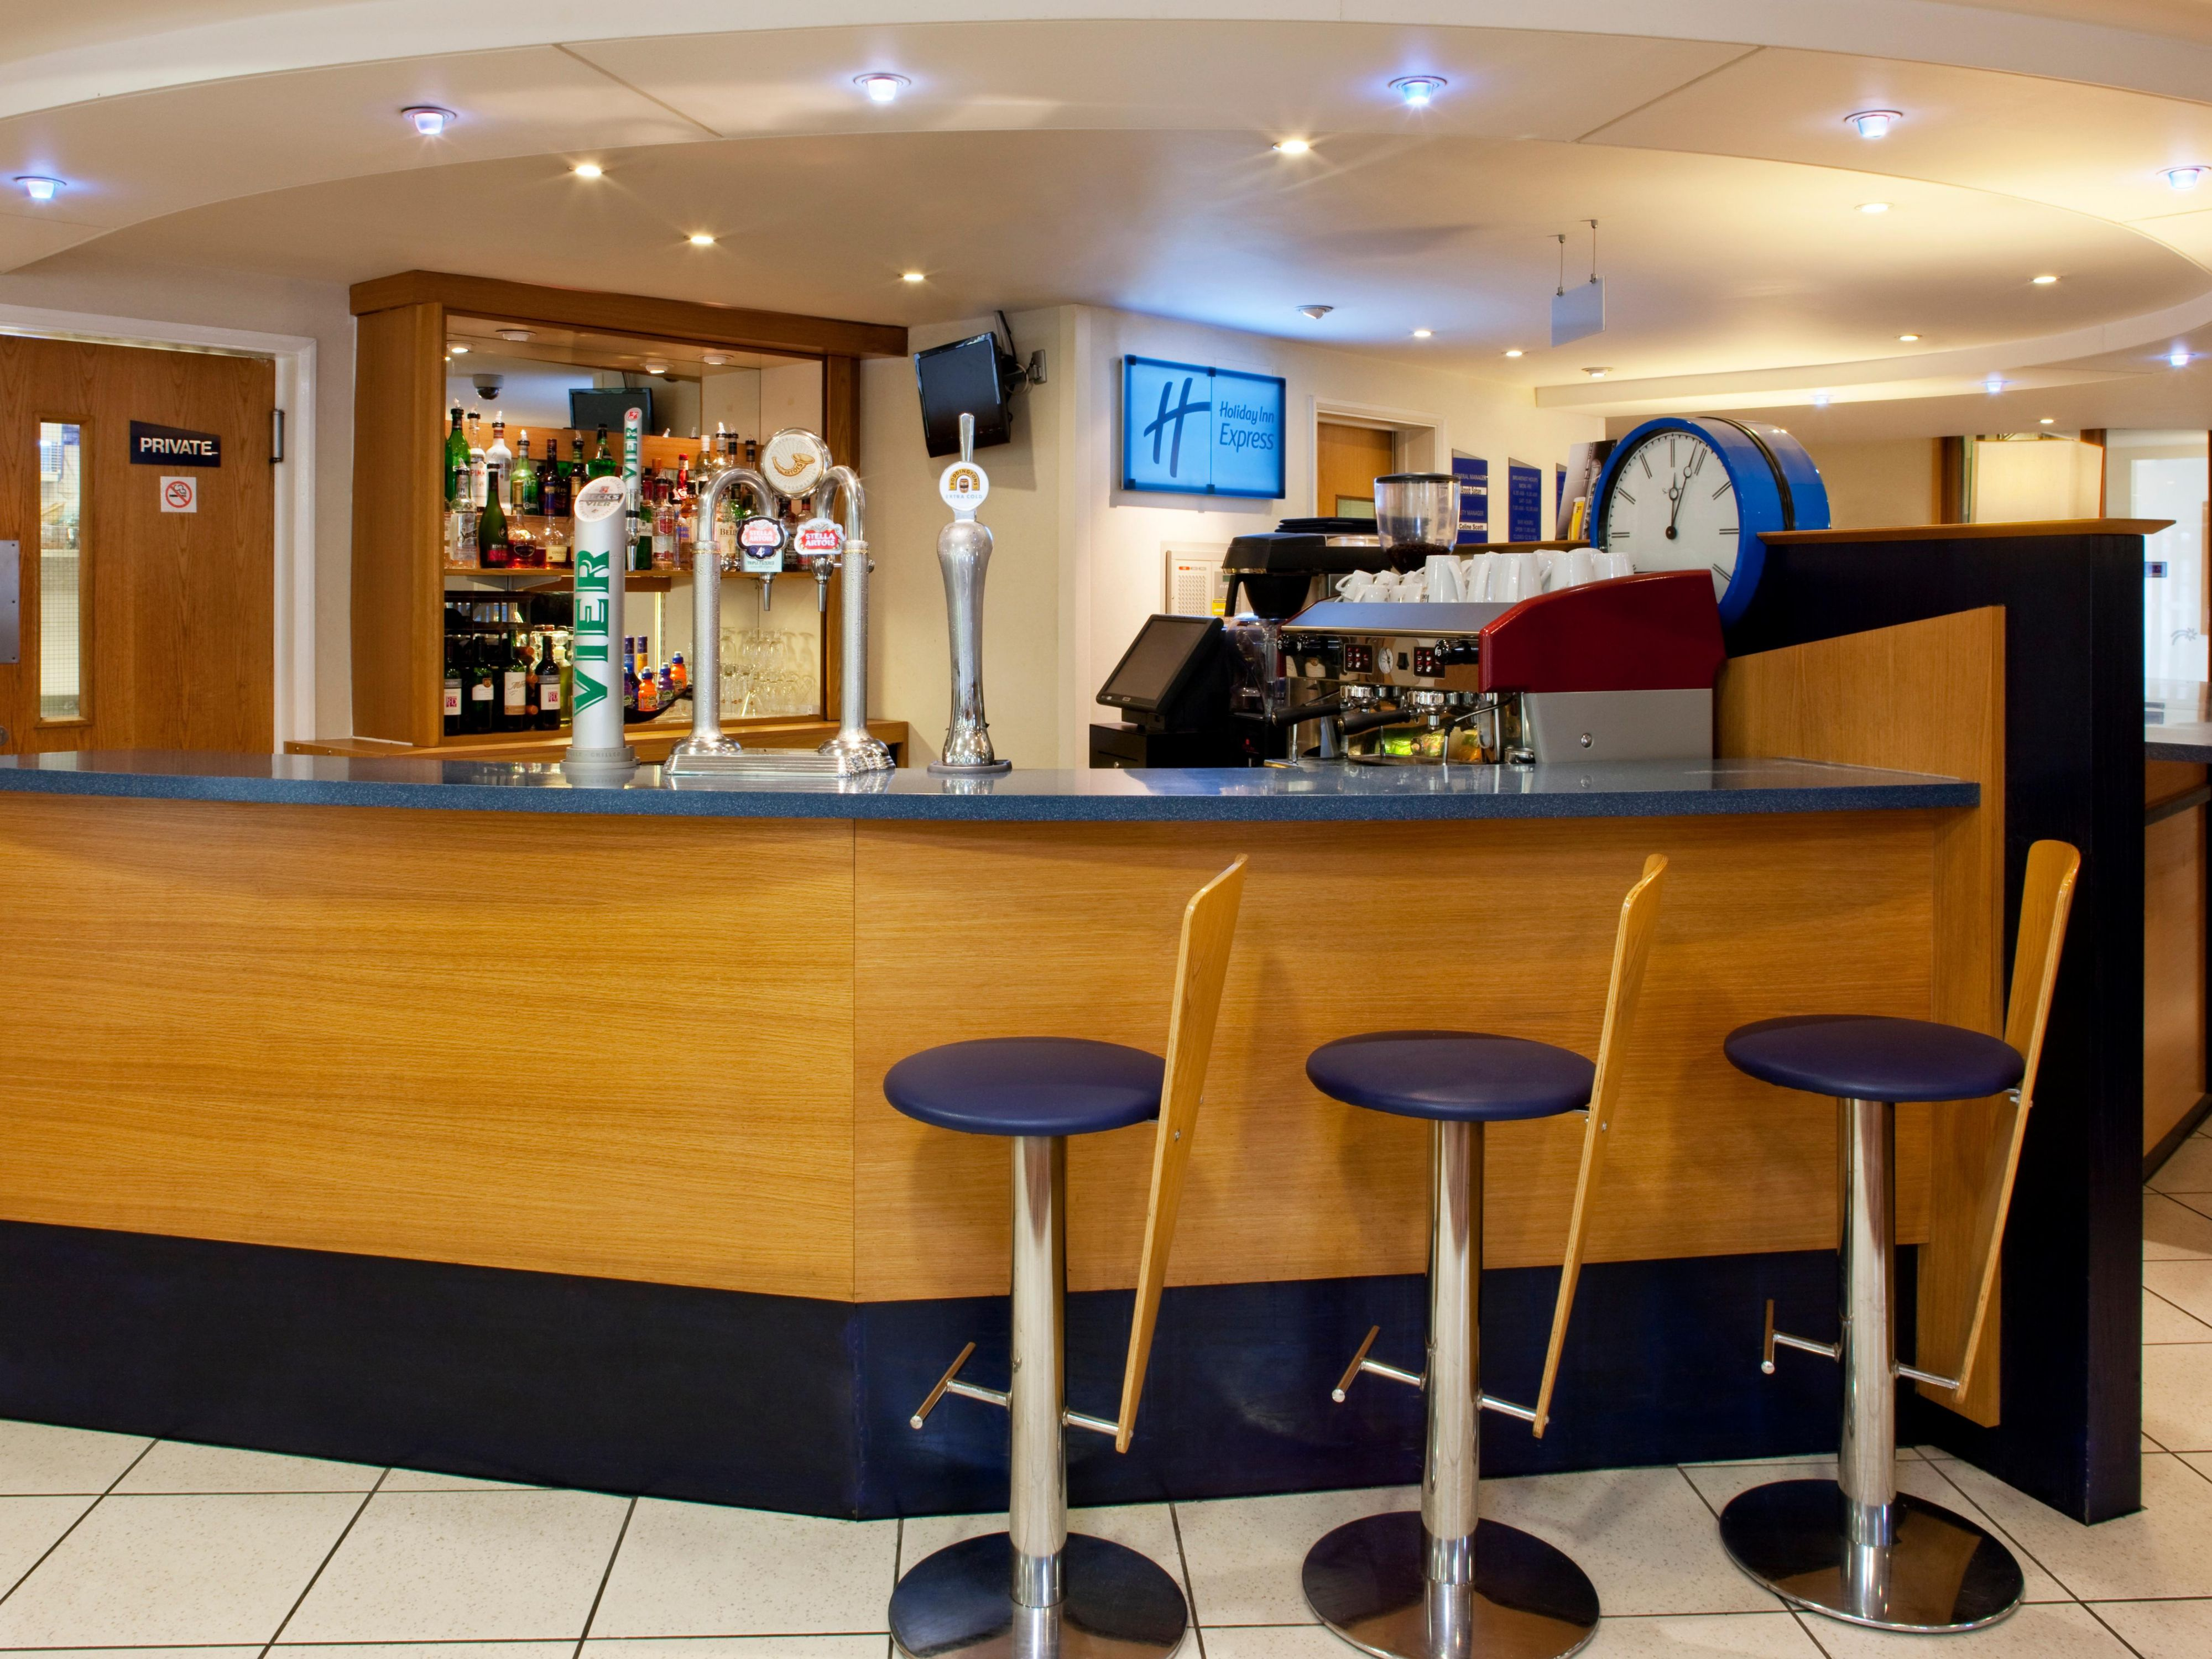 Lobby Bar serving a range of drinks and Torelli coffee